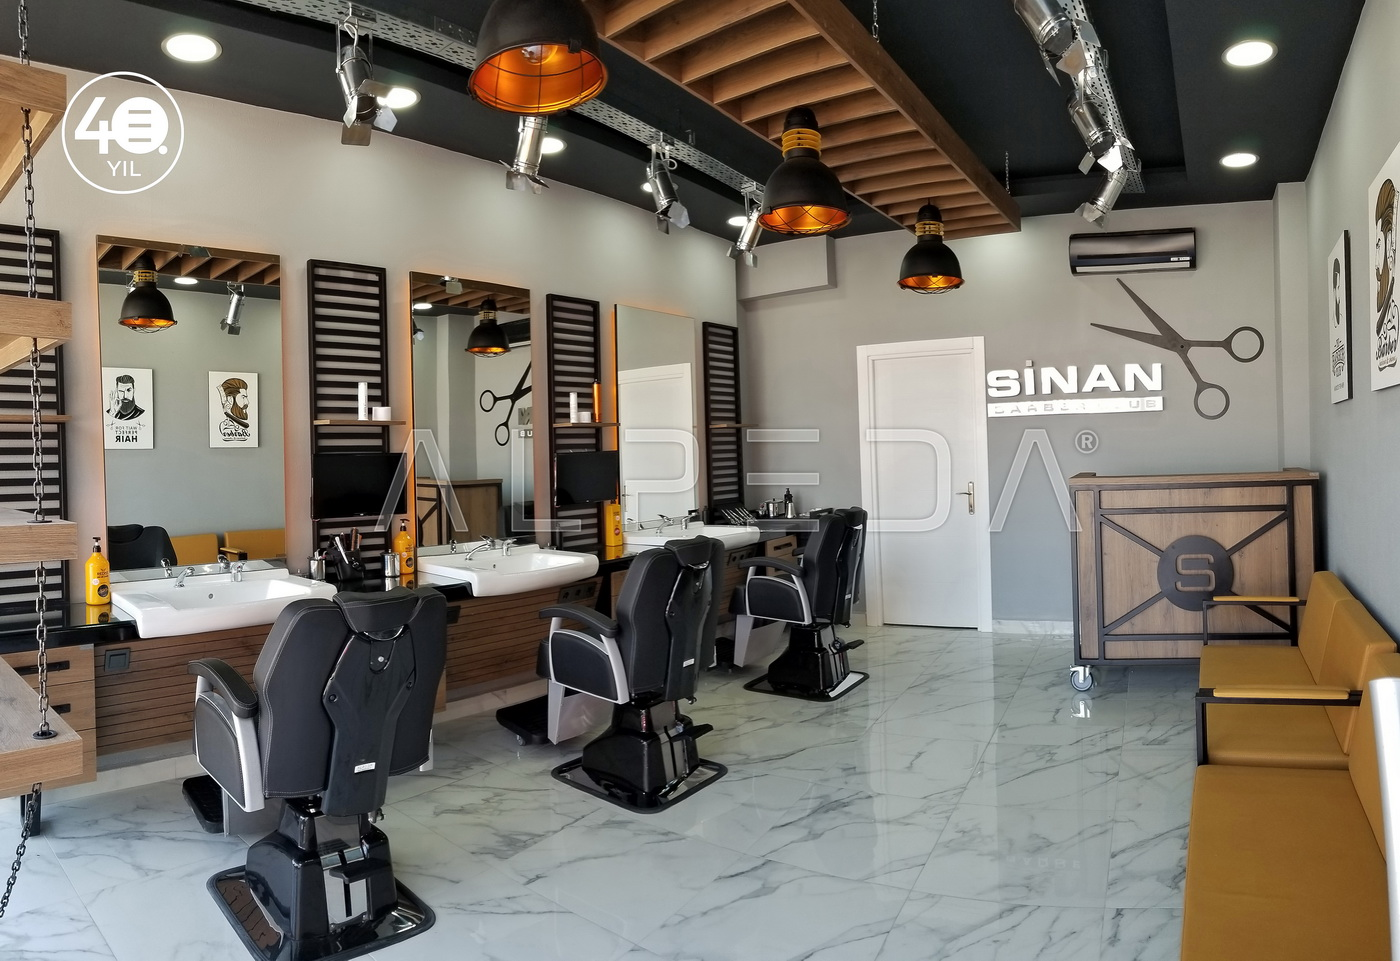 Bursa - Sinan Barber Club